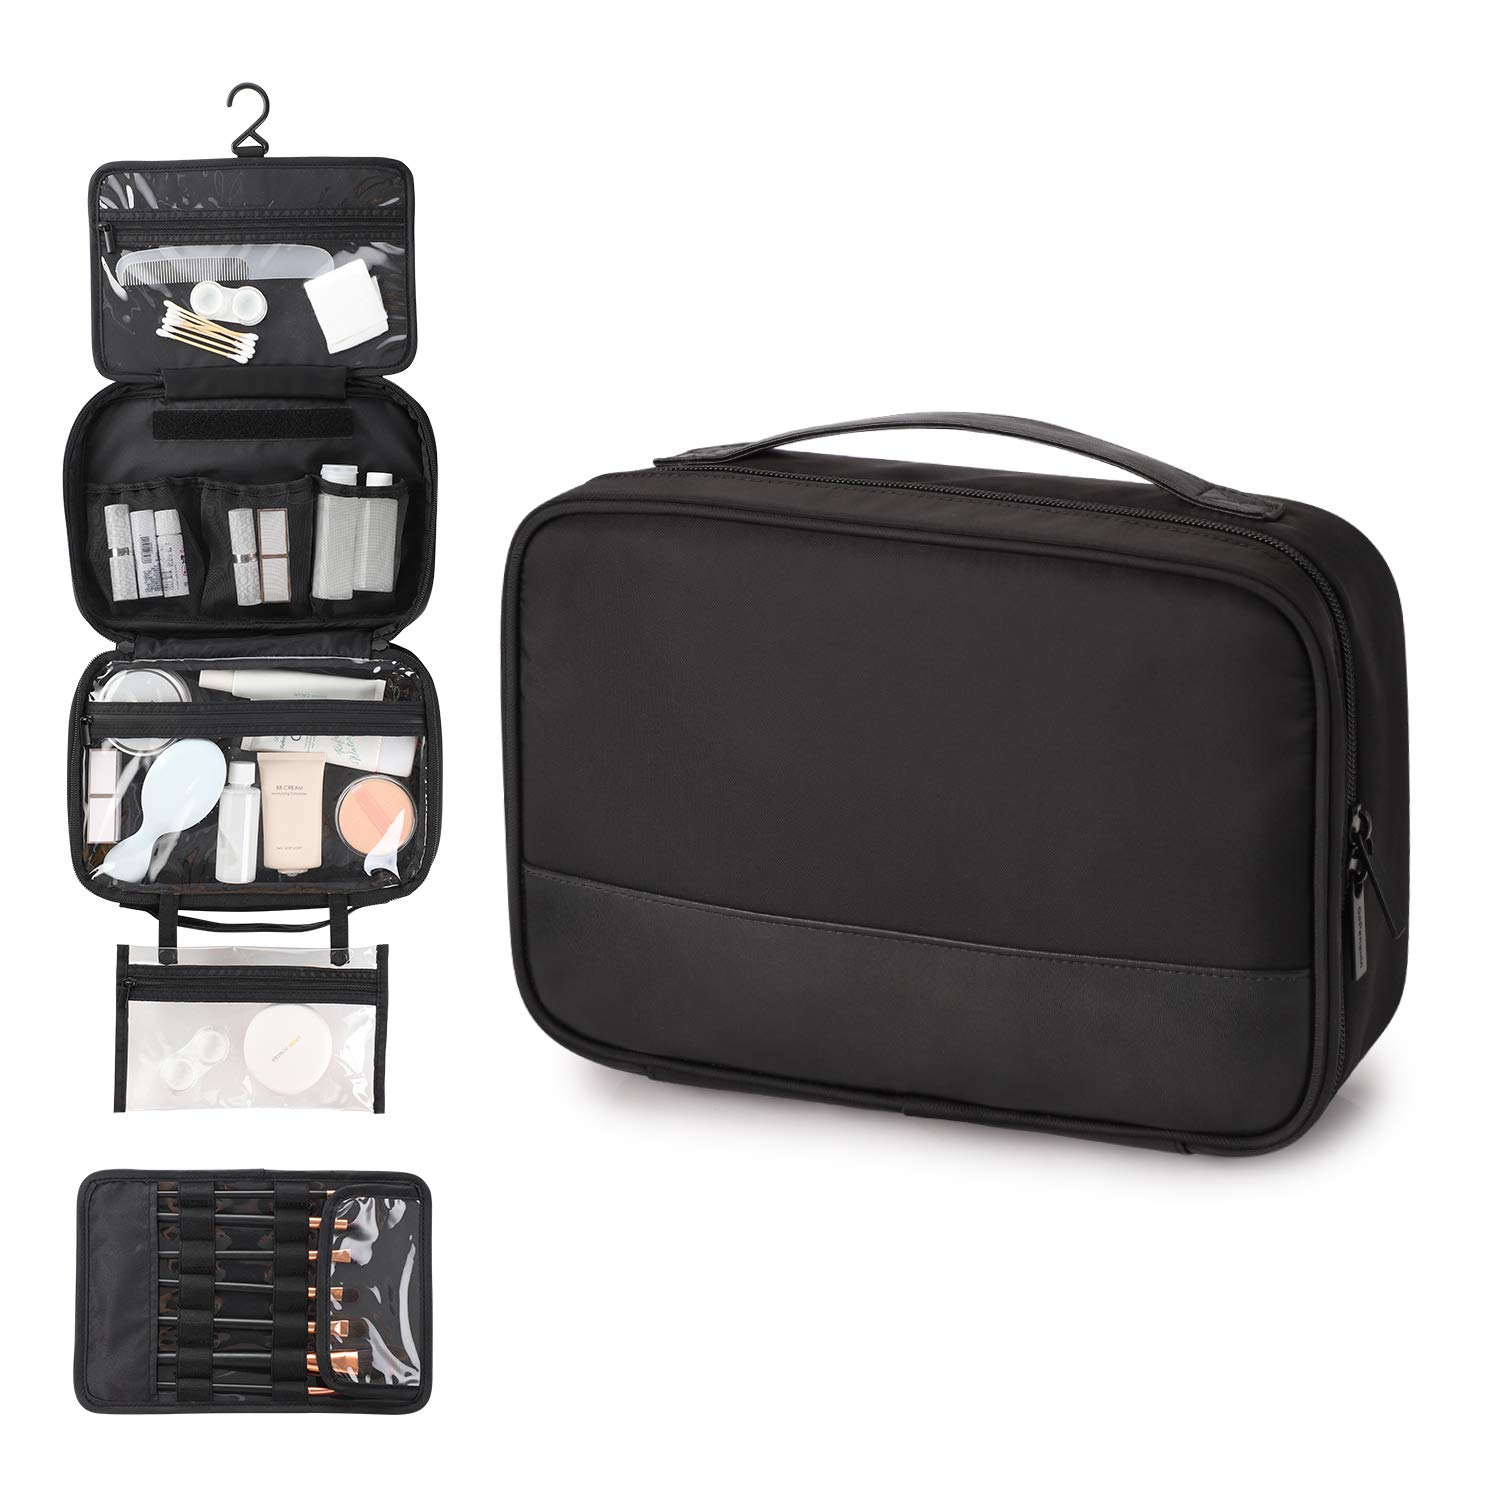 GoPenguin Hanging Travel Toiletry Bag, Women Cosmetic Makeup Organizer with Leak Proof Compartments for Shampoo, Bathroom Shower Black